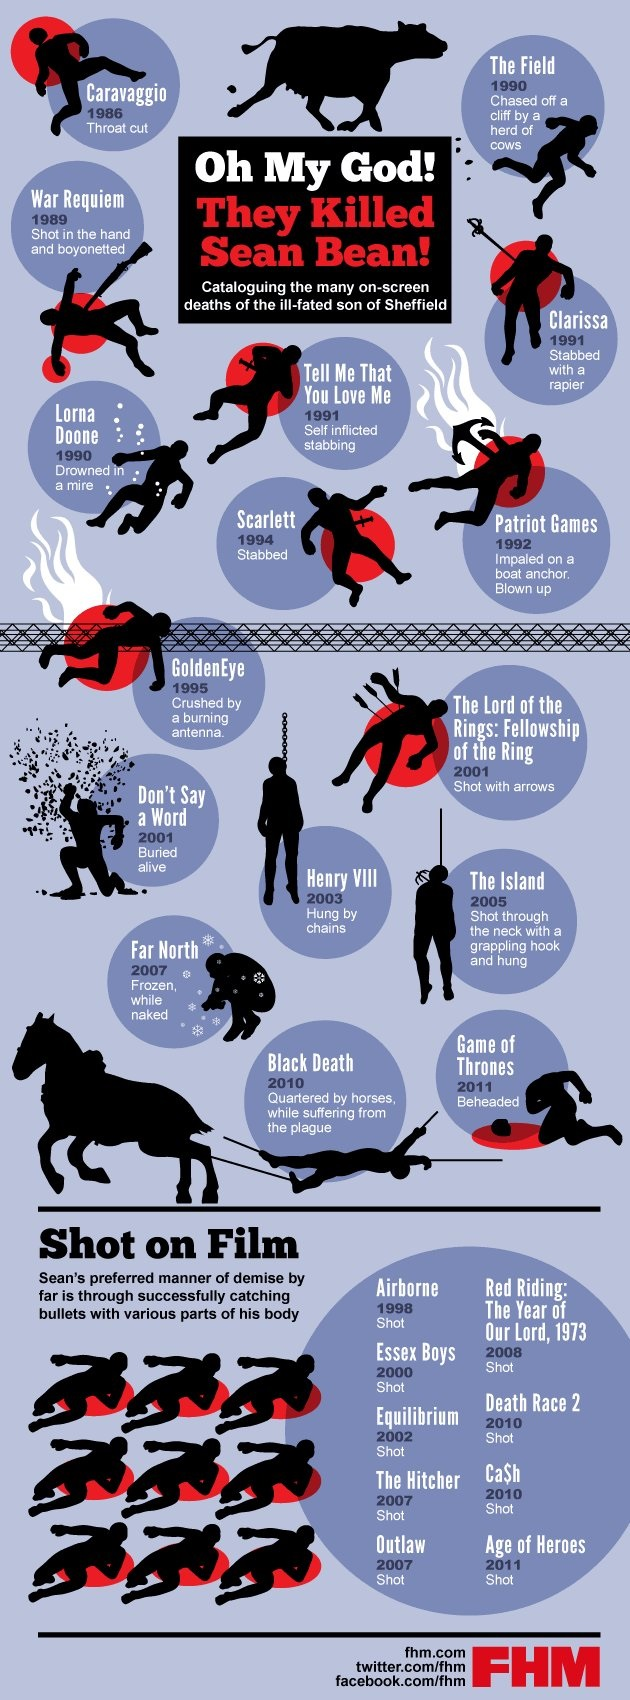 Oh My God! They Killed Sean Bean! infographic